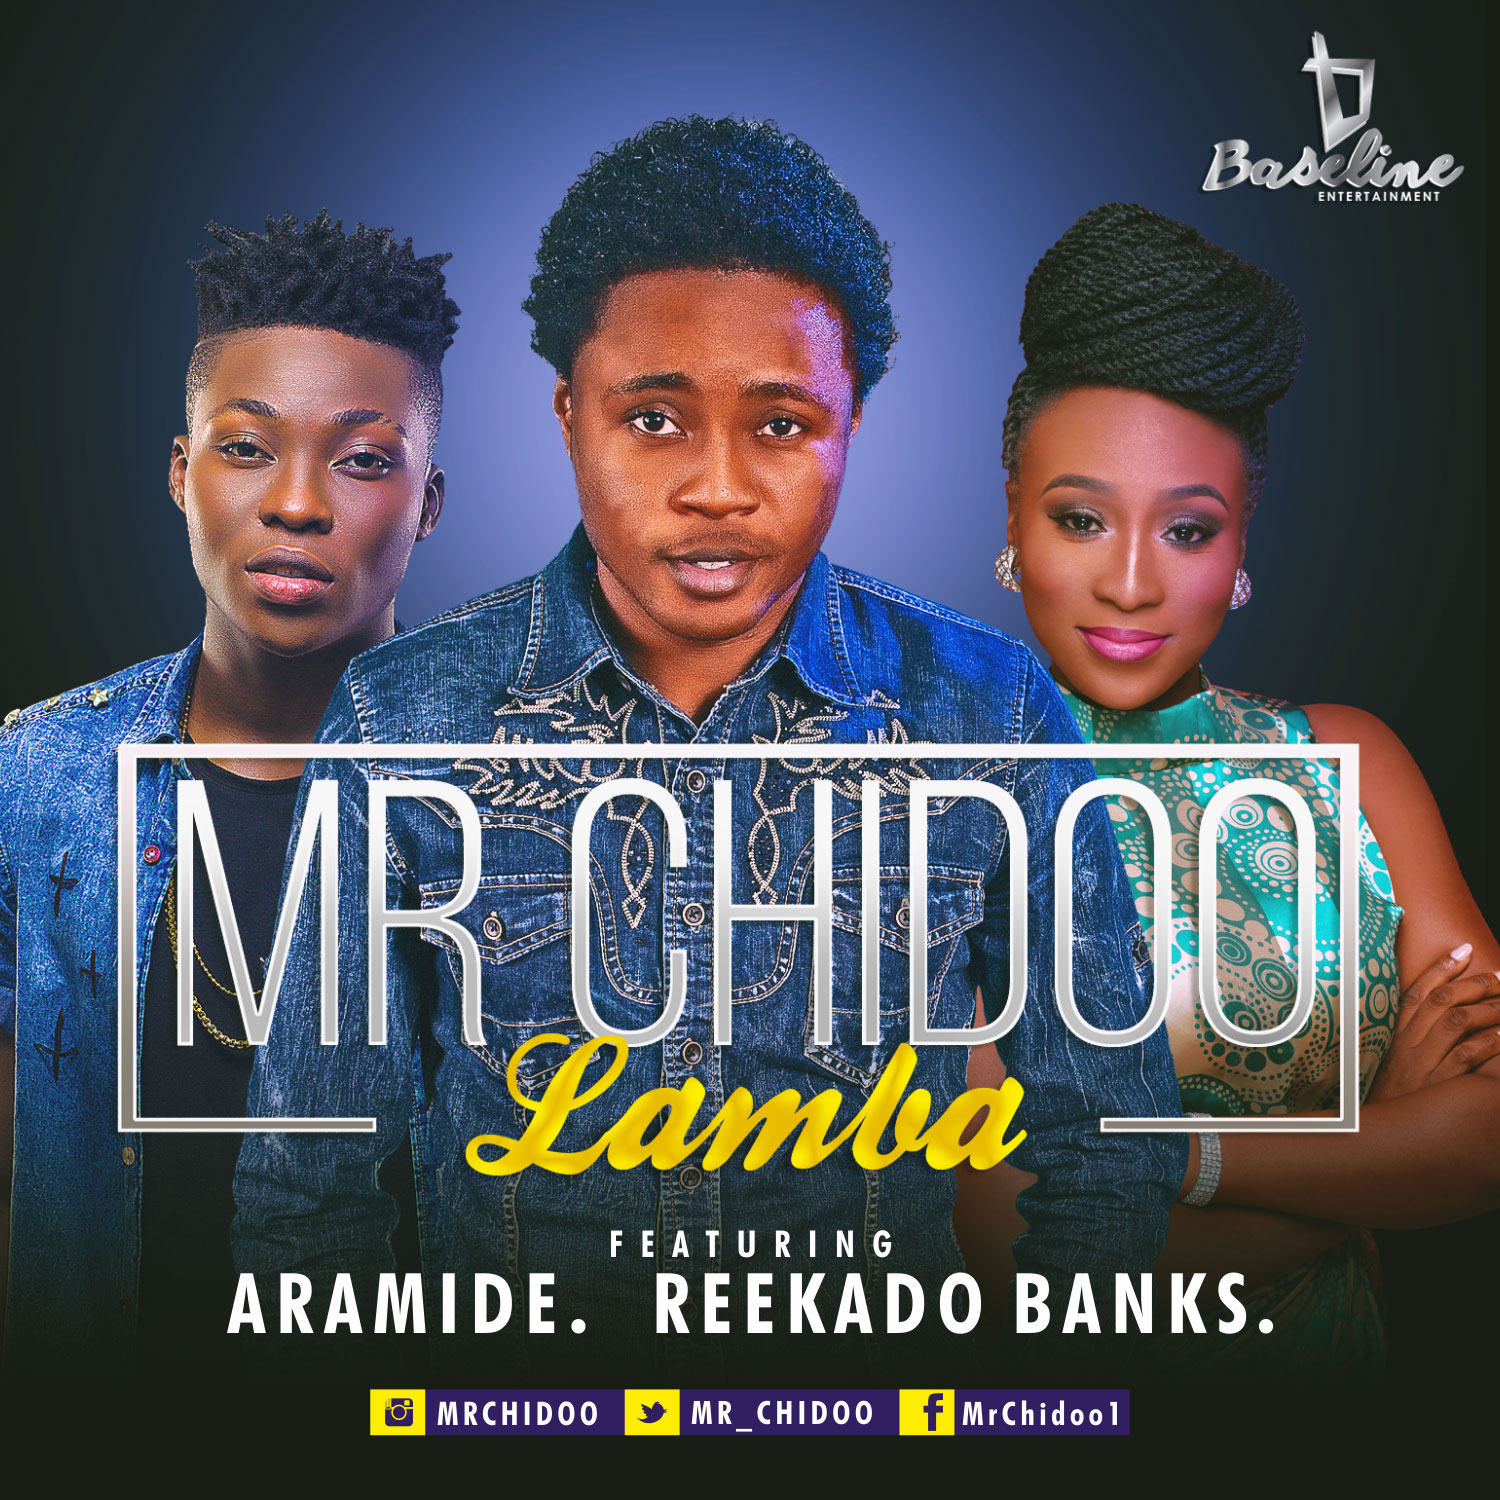 Lamba Featuring Reekado Banks and Aramide